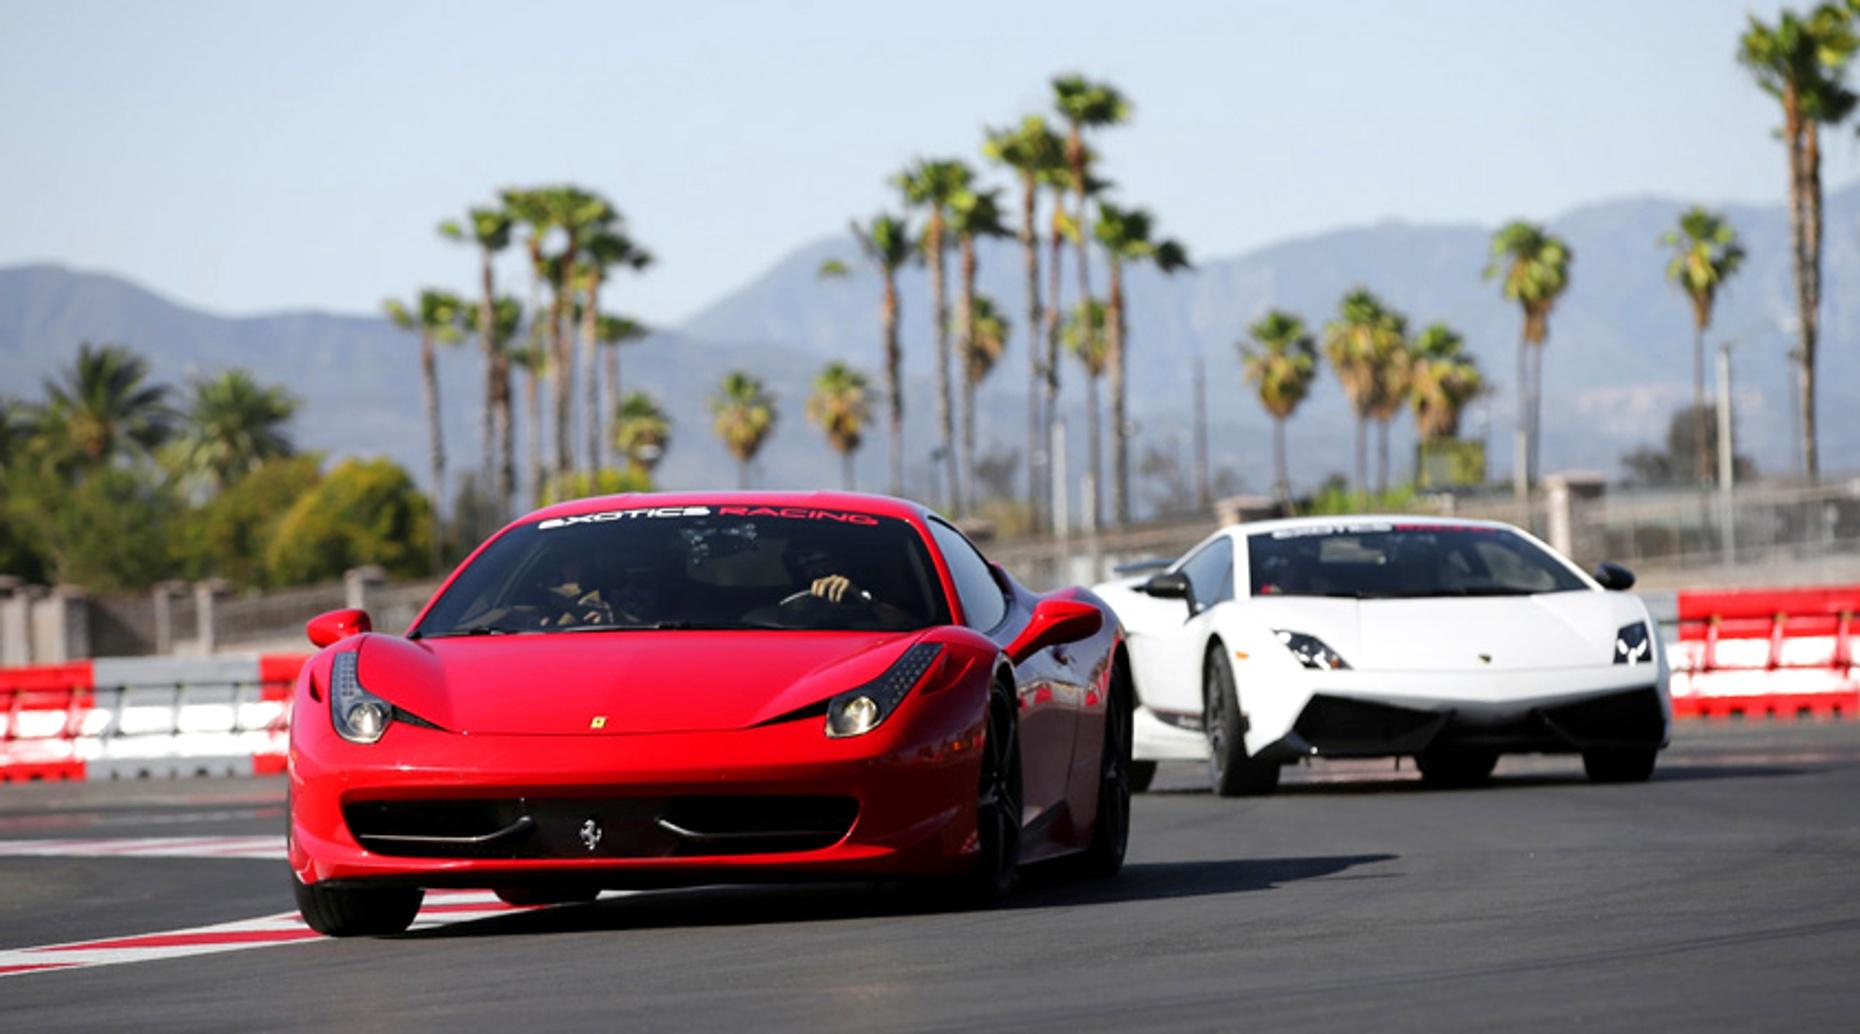 Ferrari Driving Experience in Los Angeles